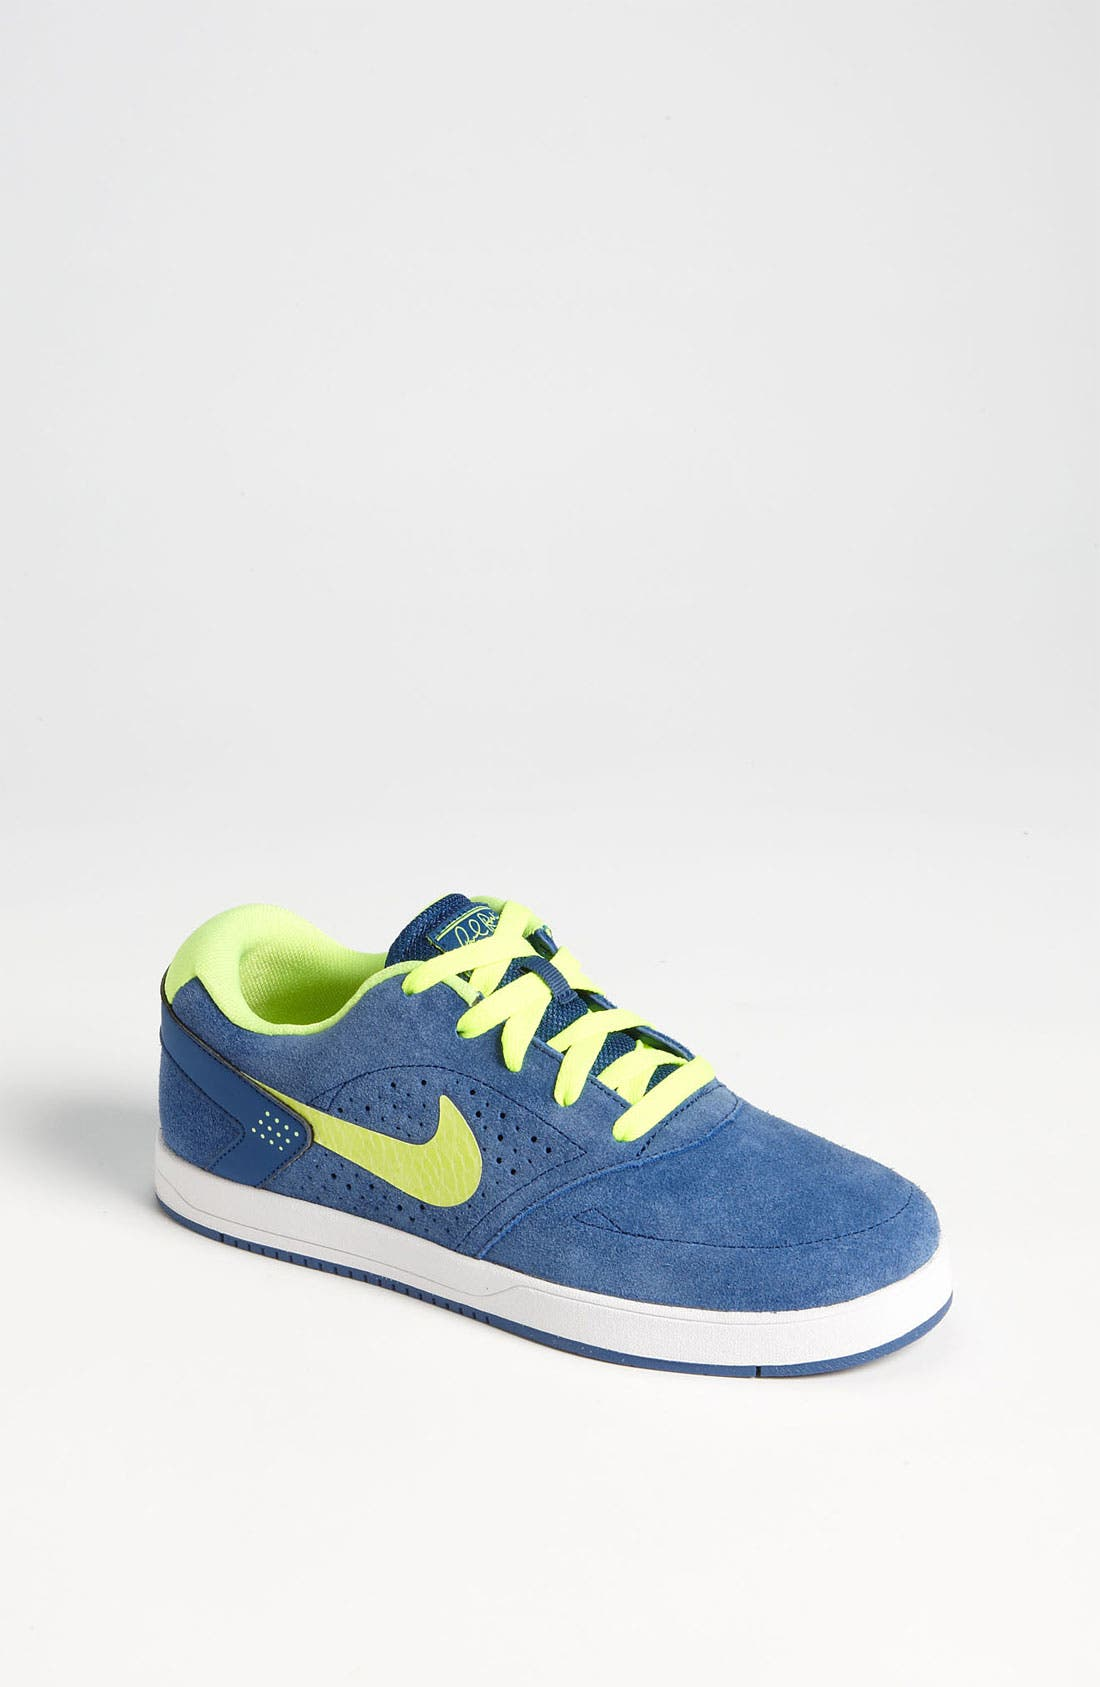 Alternate Image 1 Selected - Nike 'Paul Rodriguez 6' Sneaker (Toddler, Little Kid & Big Kid)